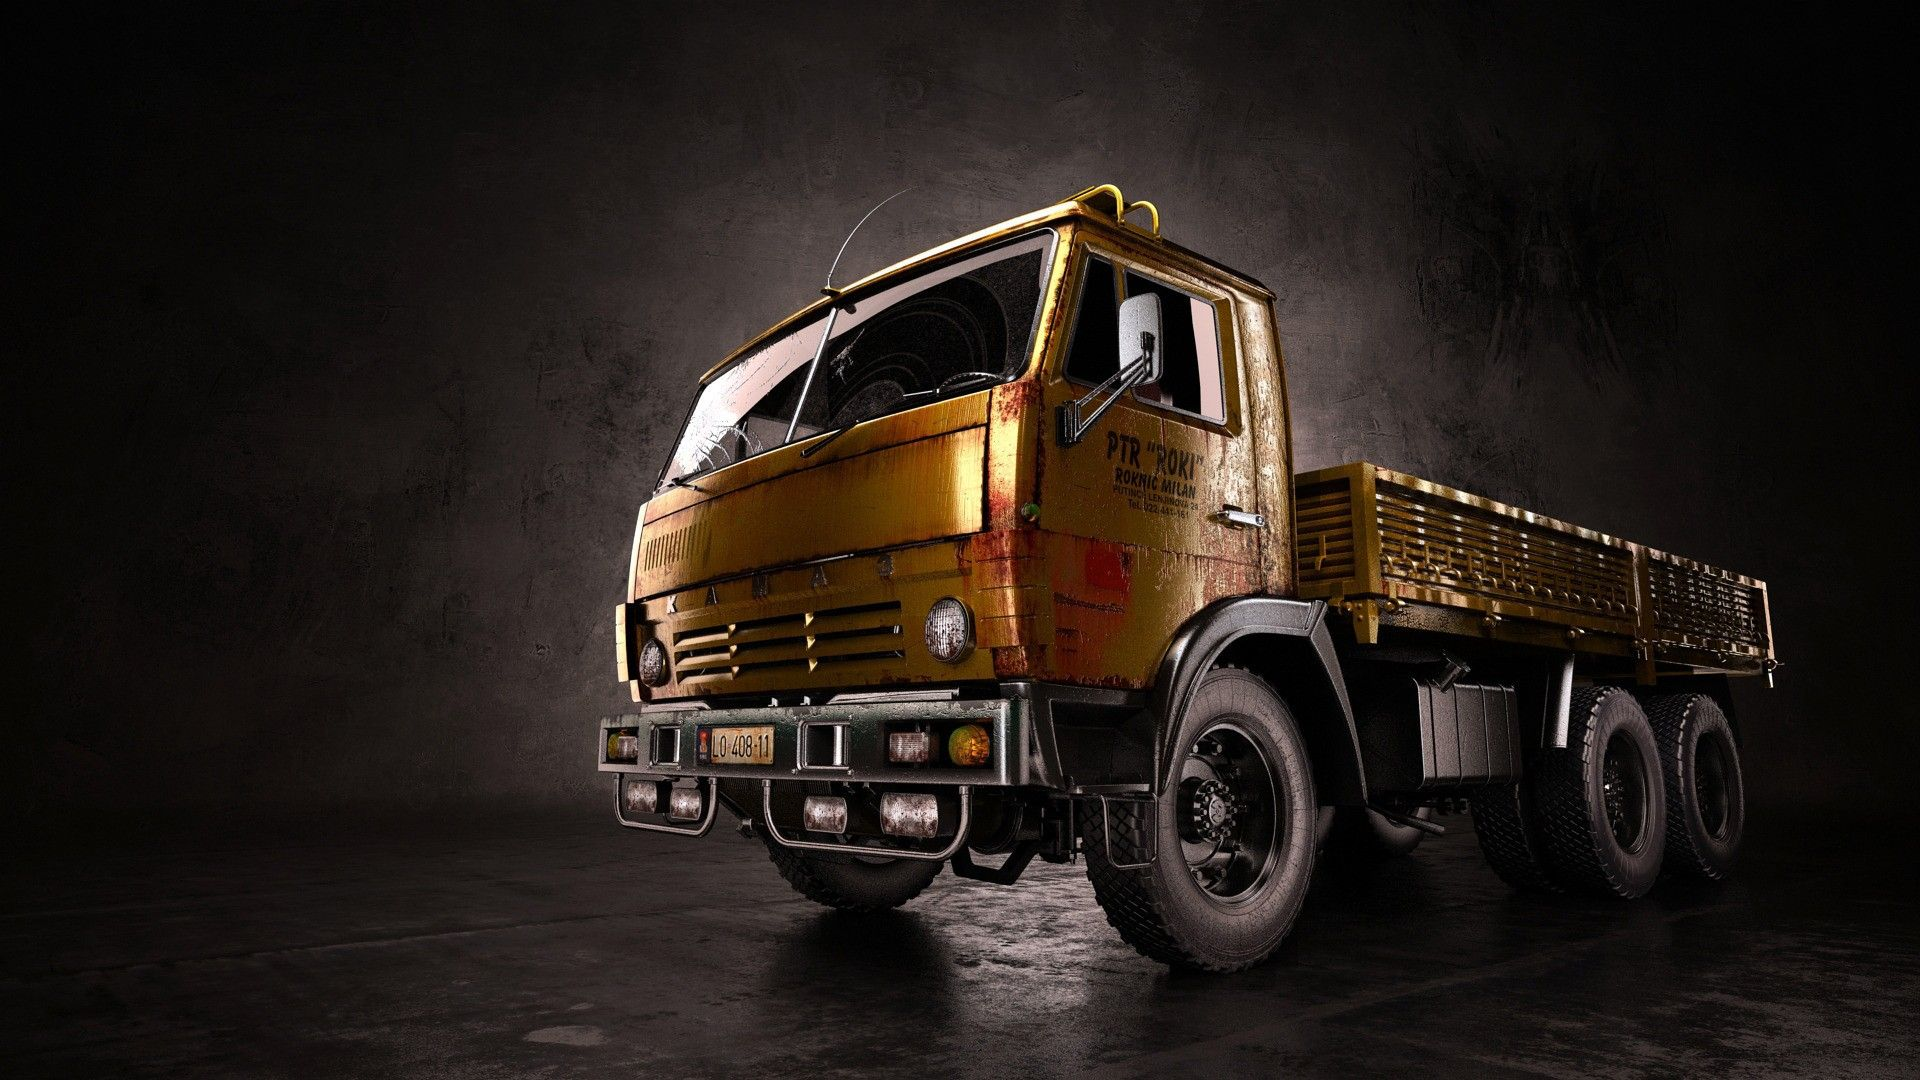 Absolutely Stunning Truck Wallpapers in HD 19201080 Truck